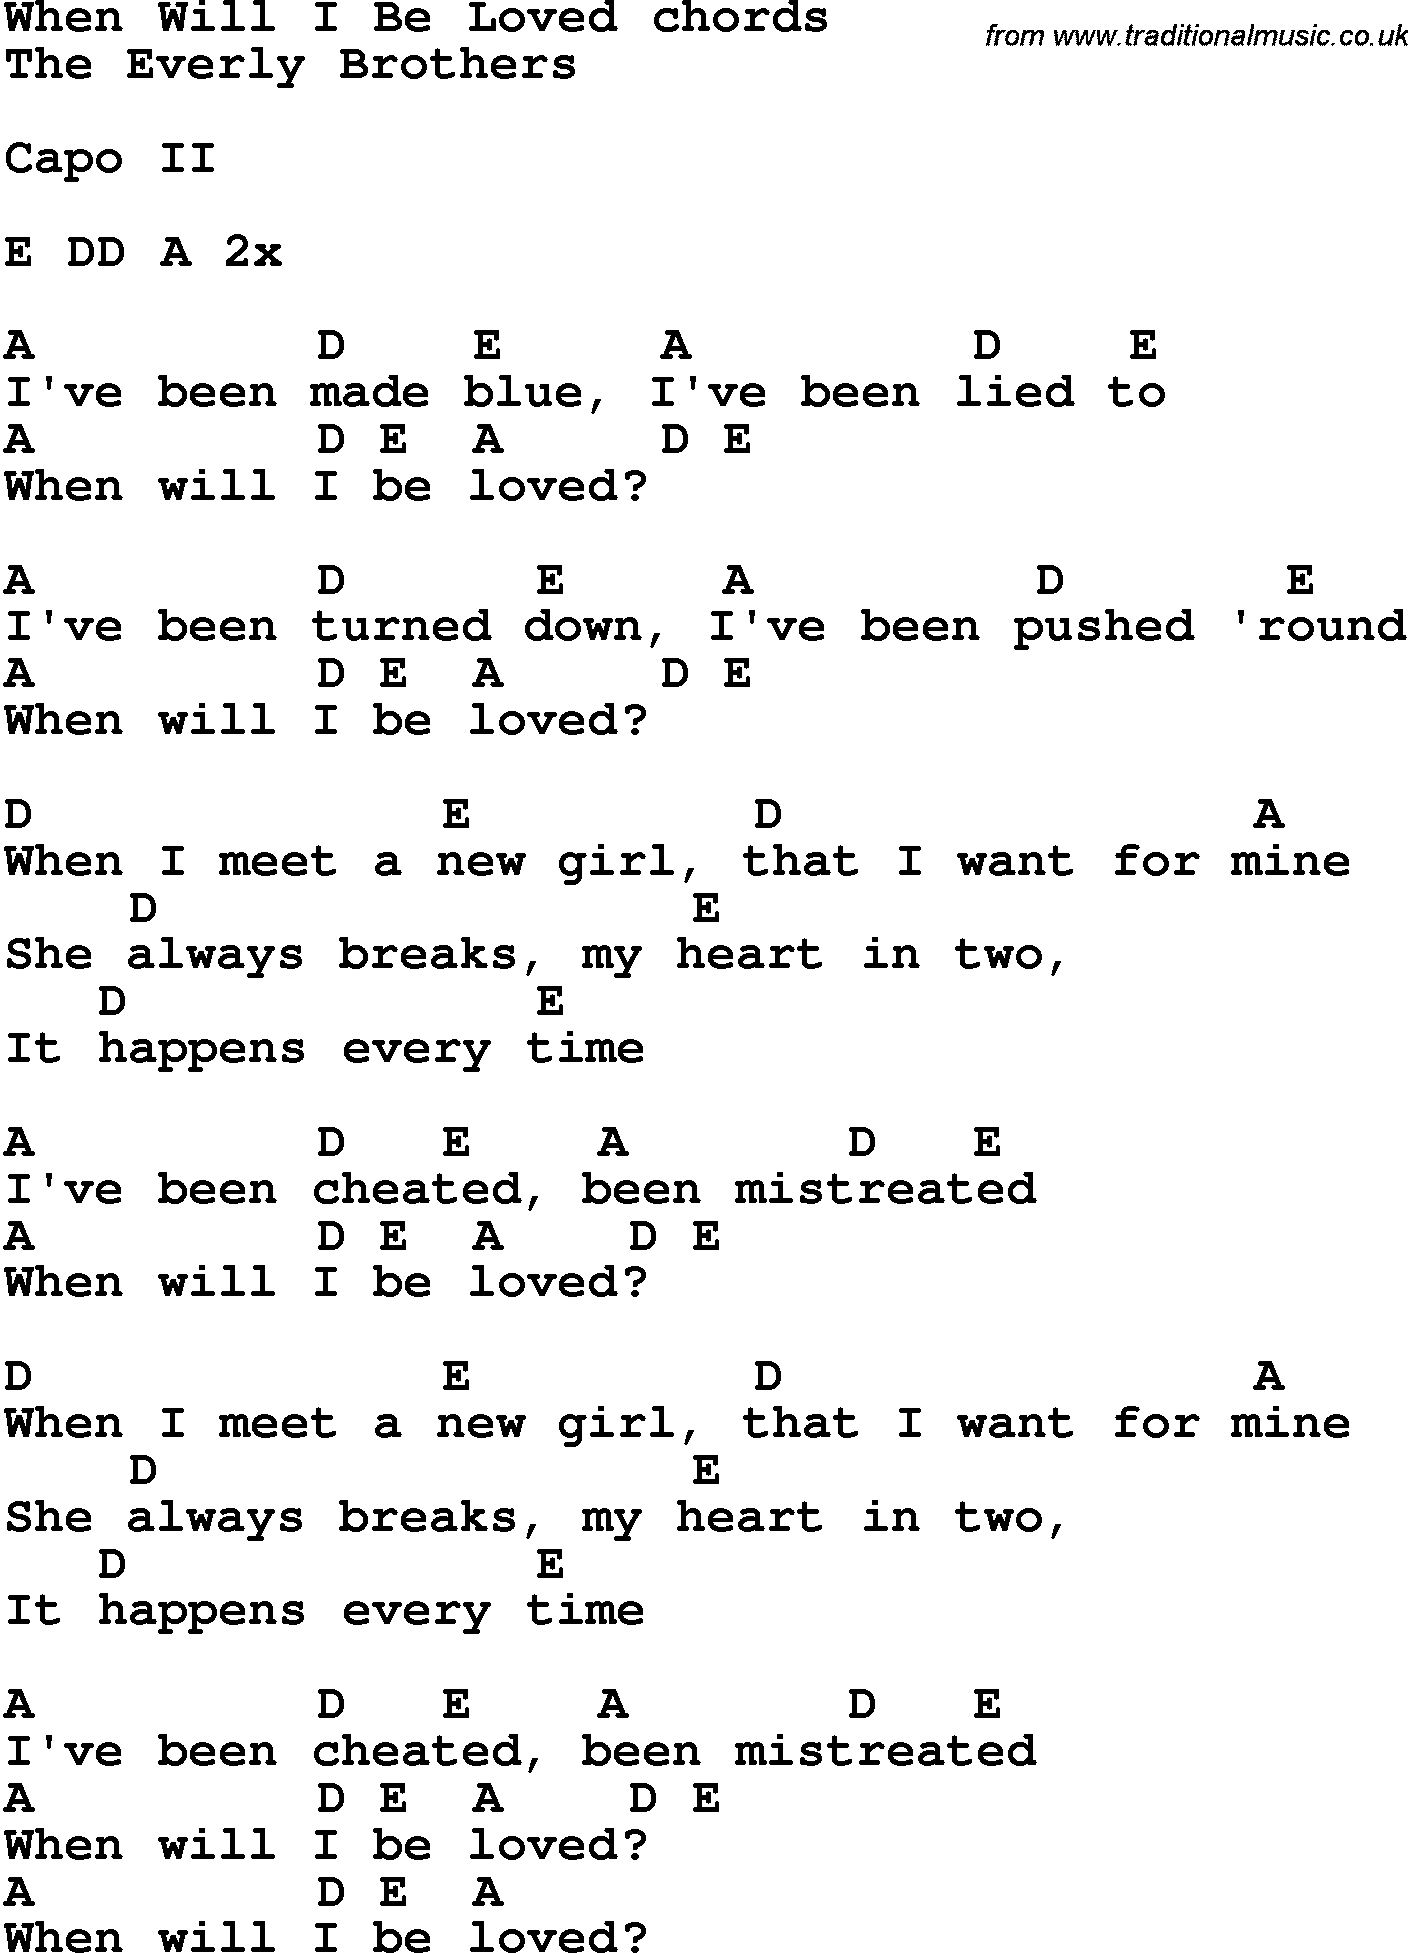 She Will Be Loved Chords Song Lyrics With Guitar Chords For When Will I Be Loved The Everly